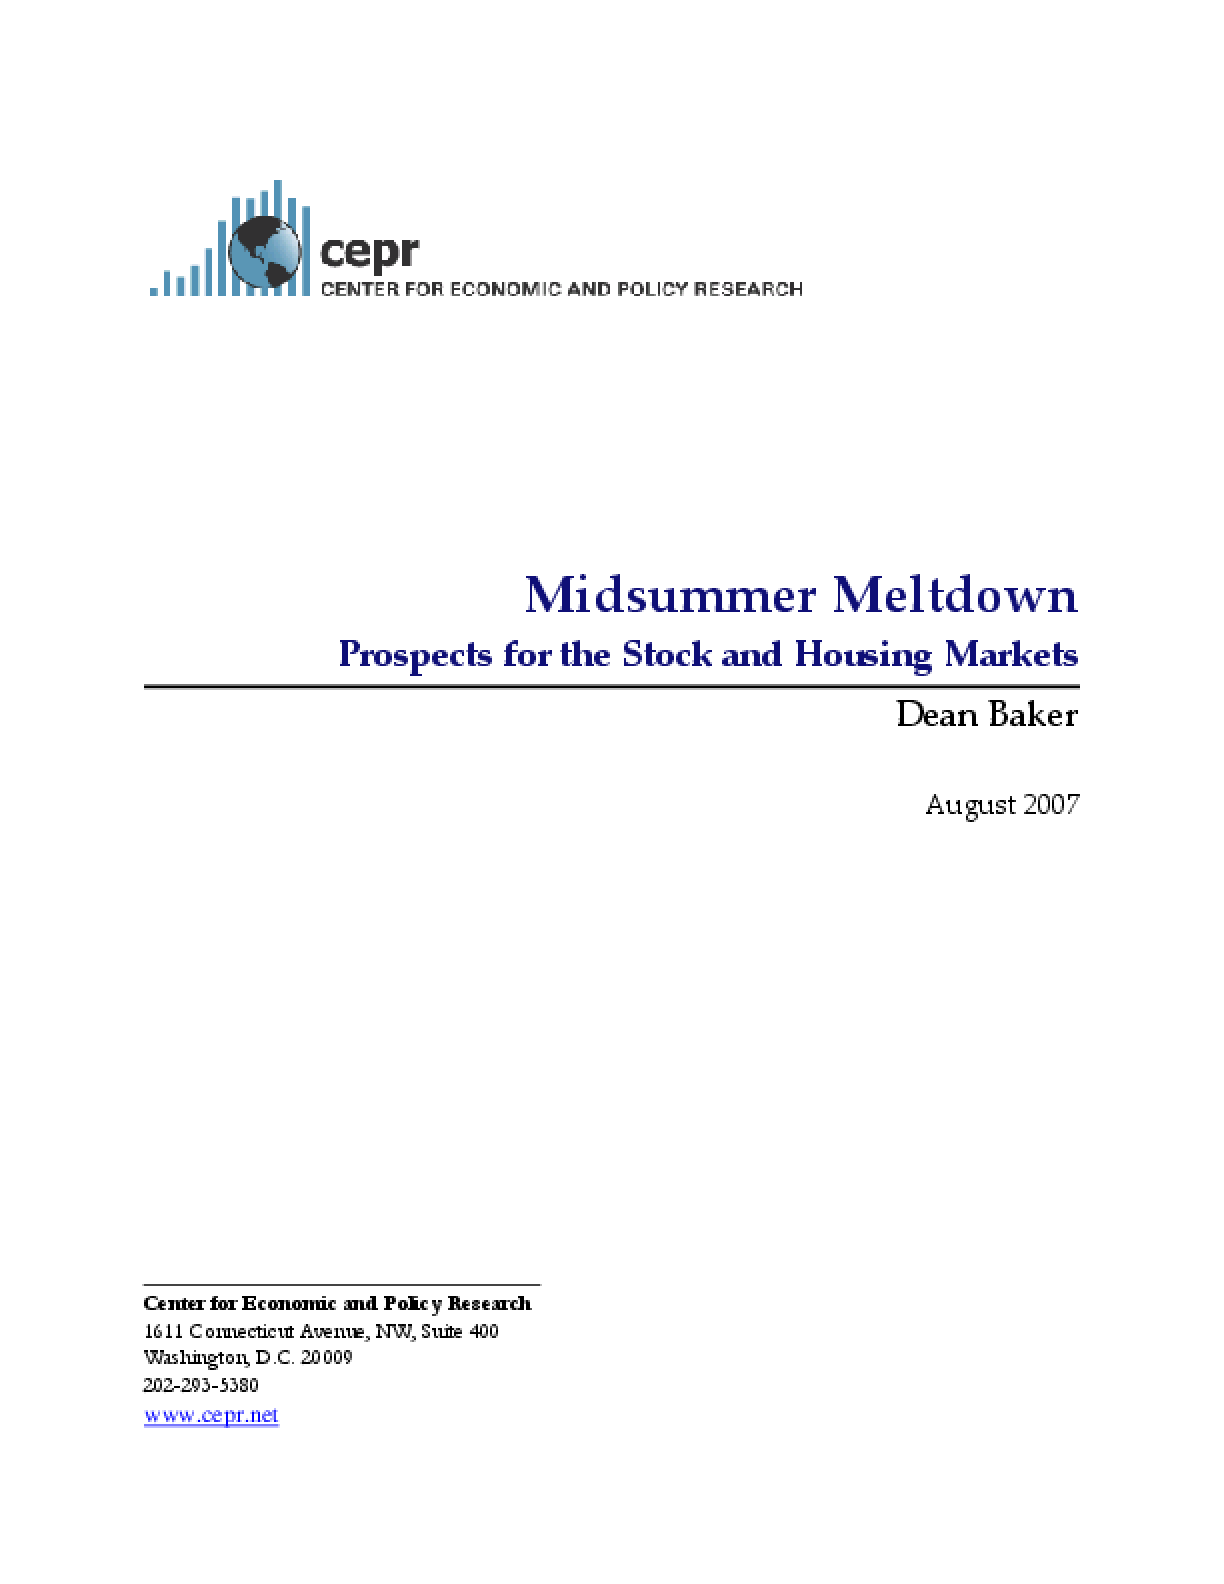 Midsummer Meltdown: Prospects for the Stock and Housing Markets